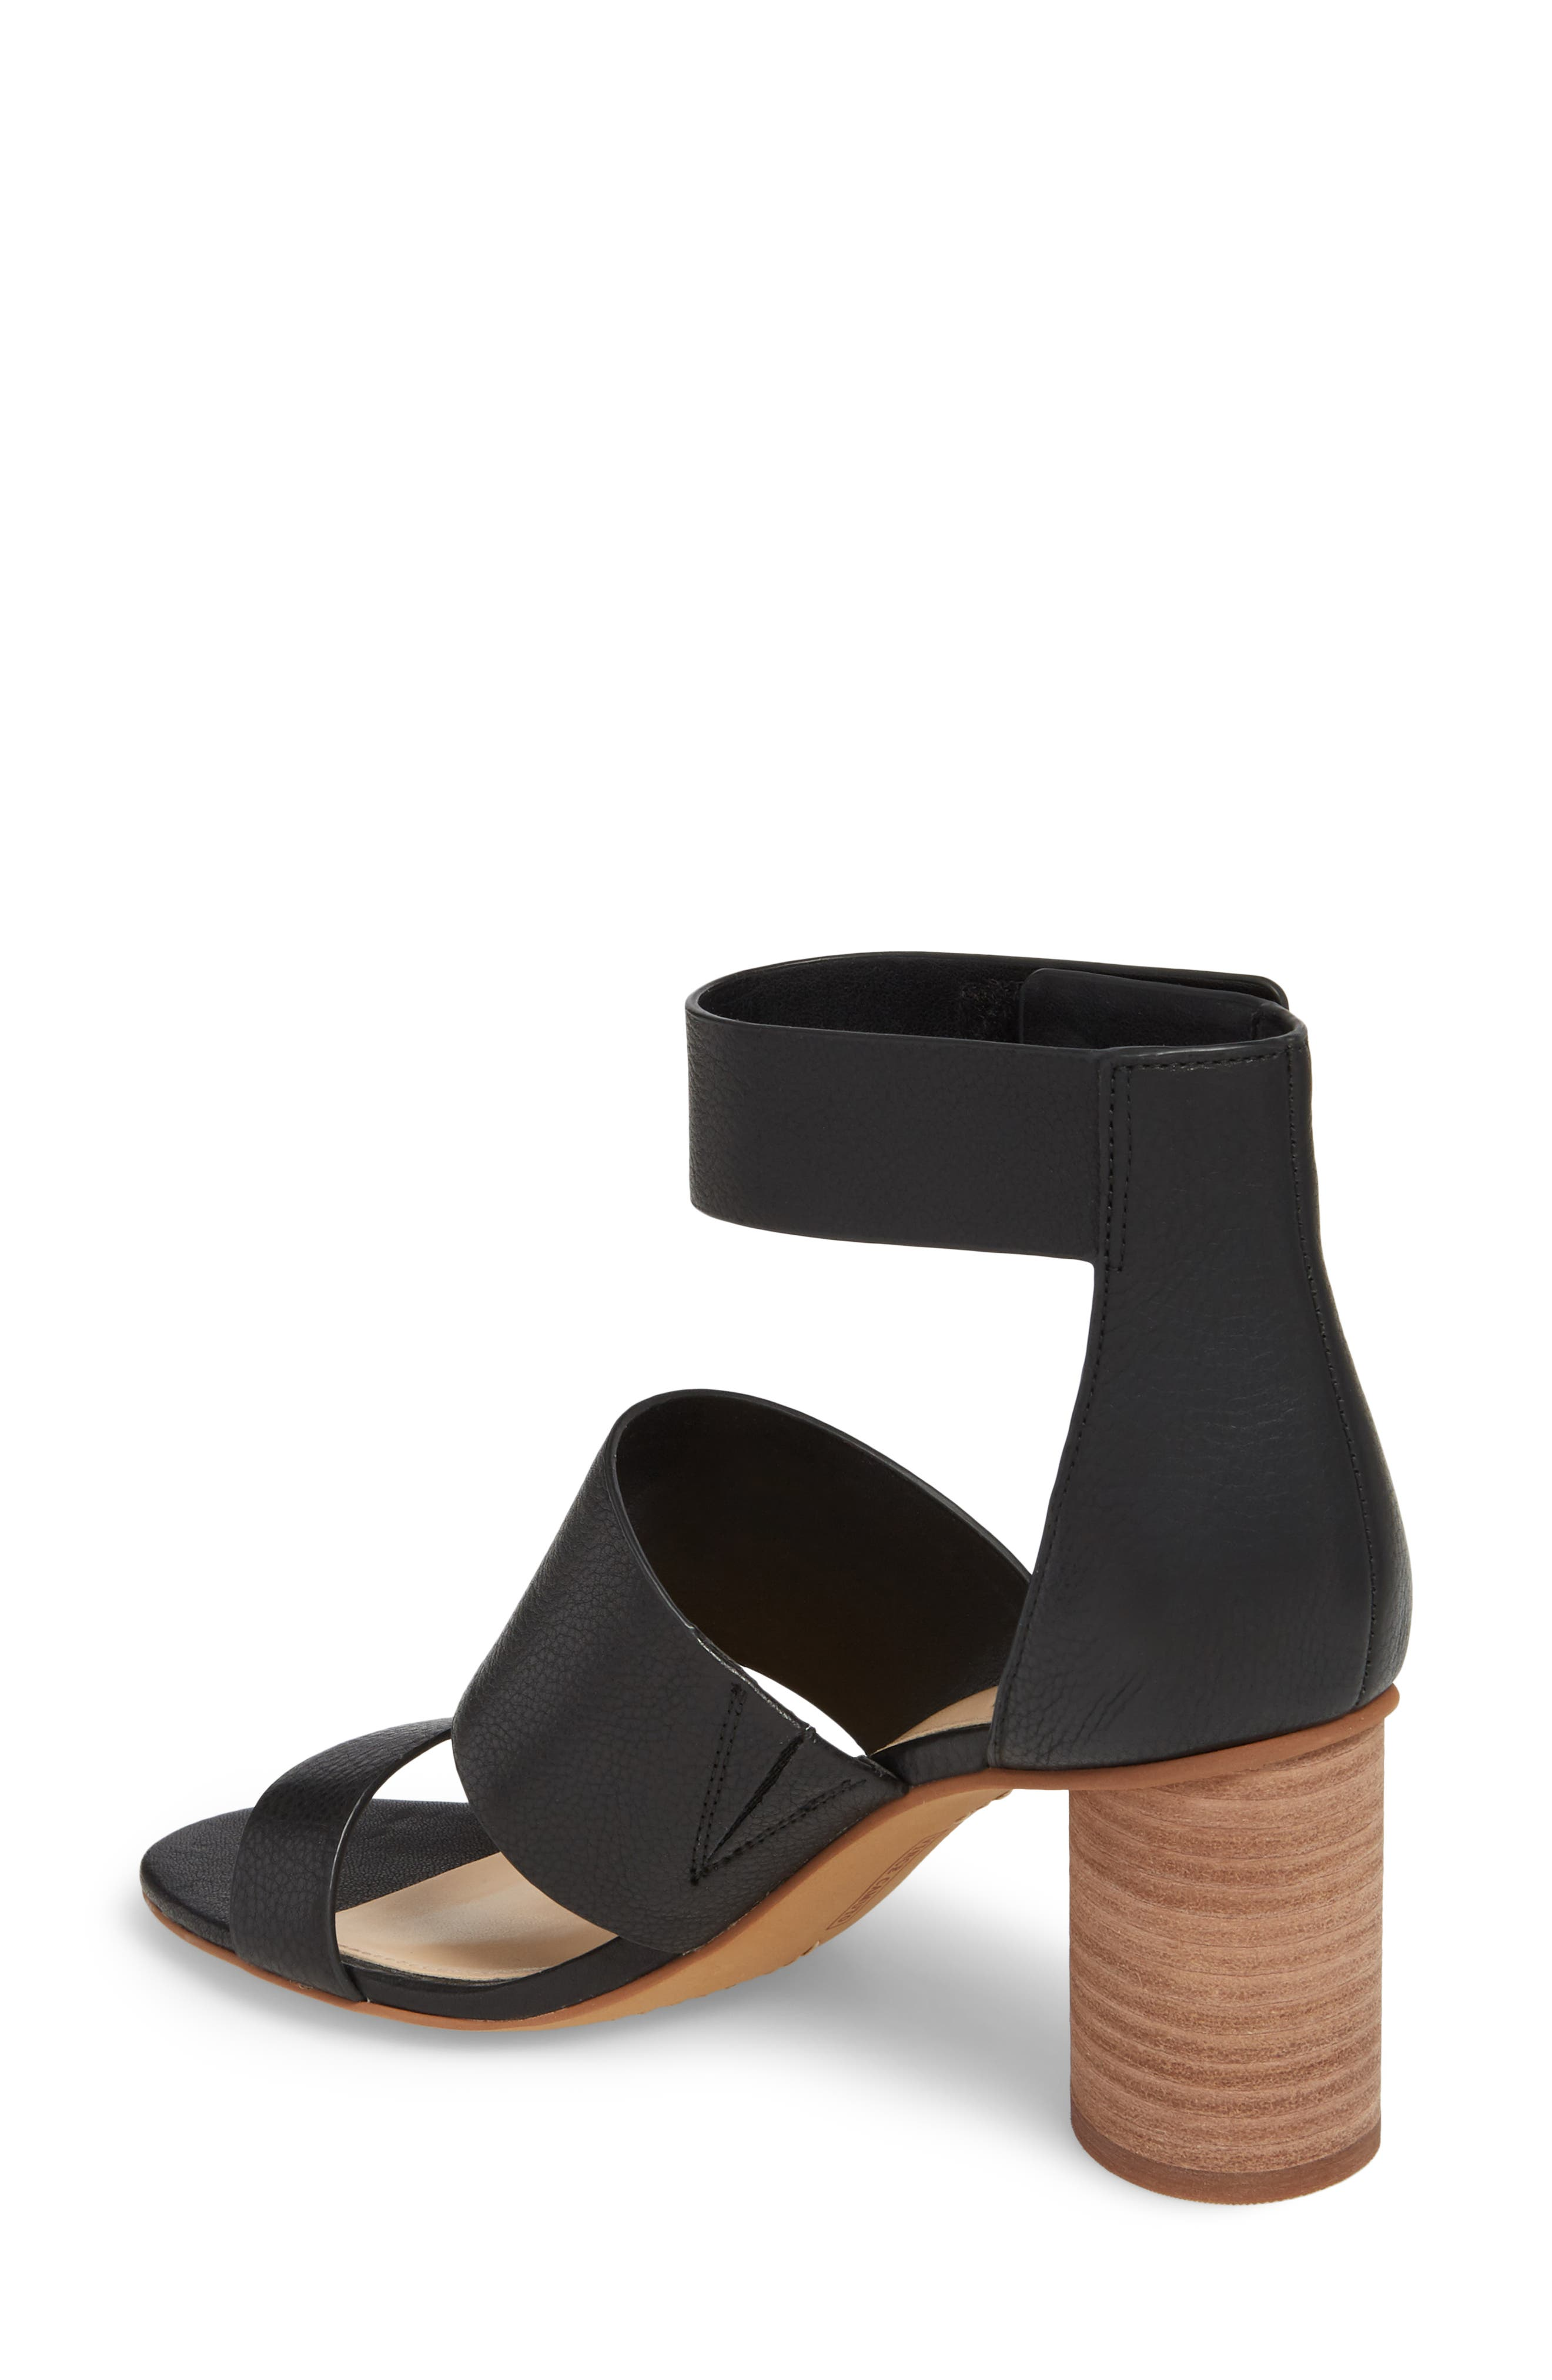 Junette Sandal,                             Alternate thumbnail 2, color,                             001